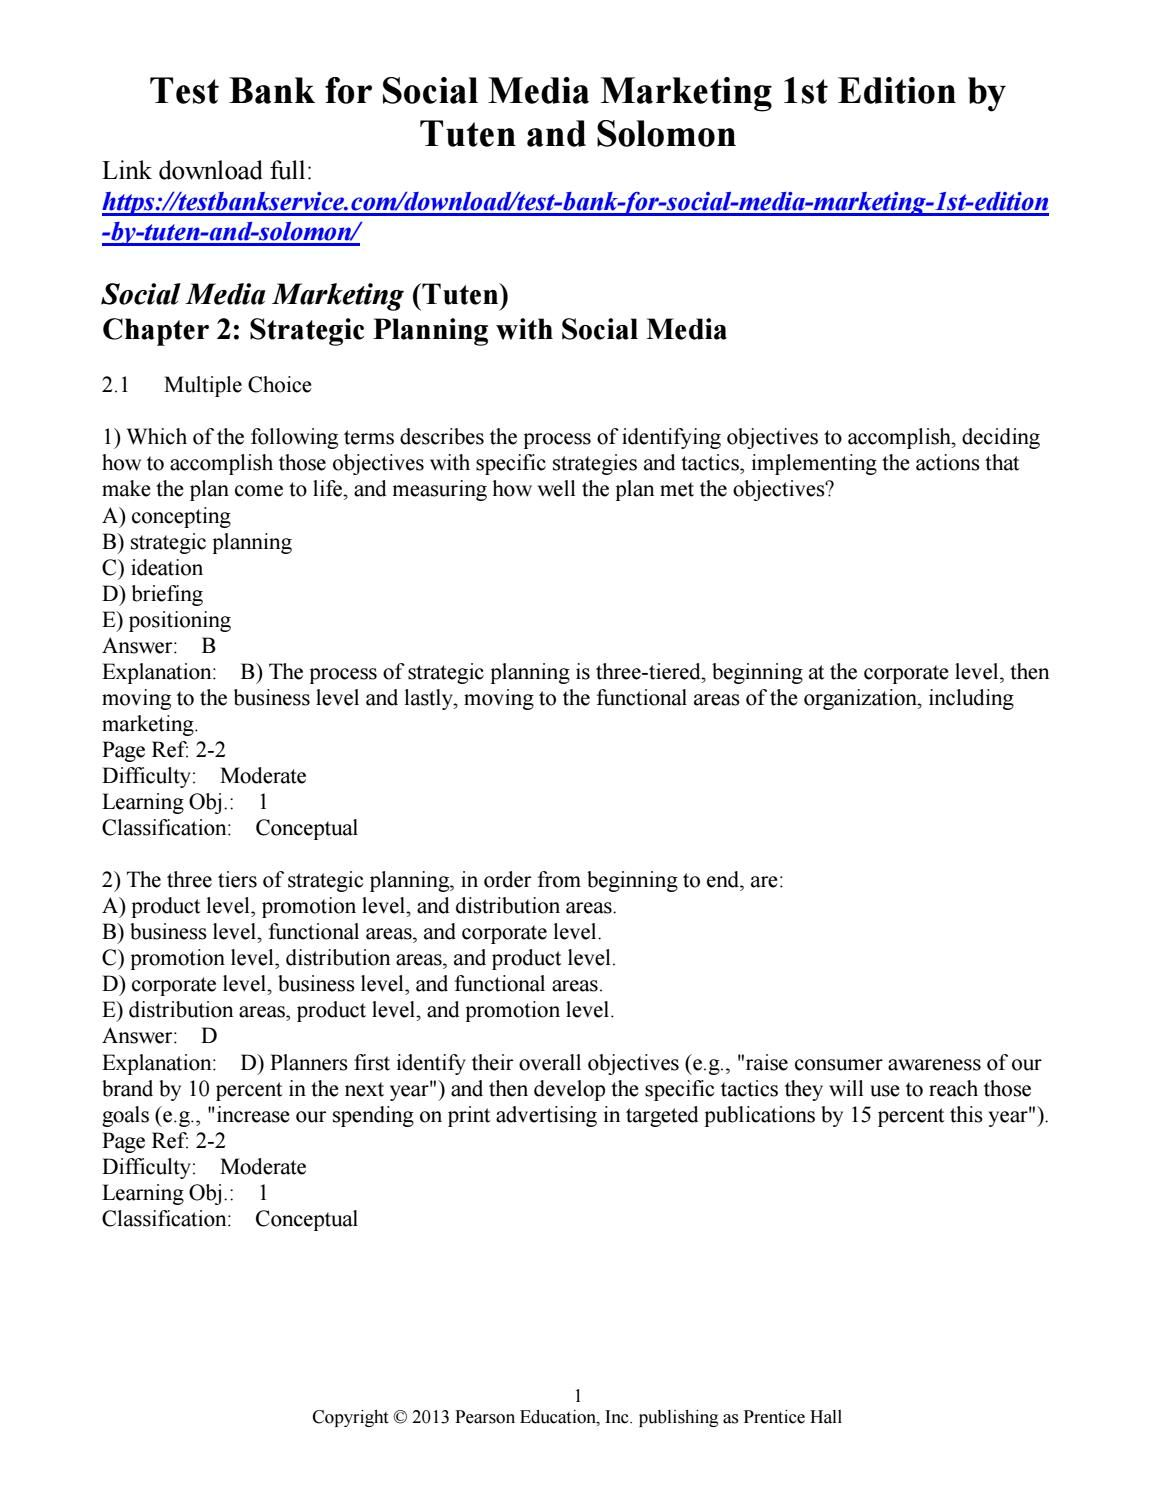 Test bank for social media marketing 1st edition by tuten and ...